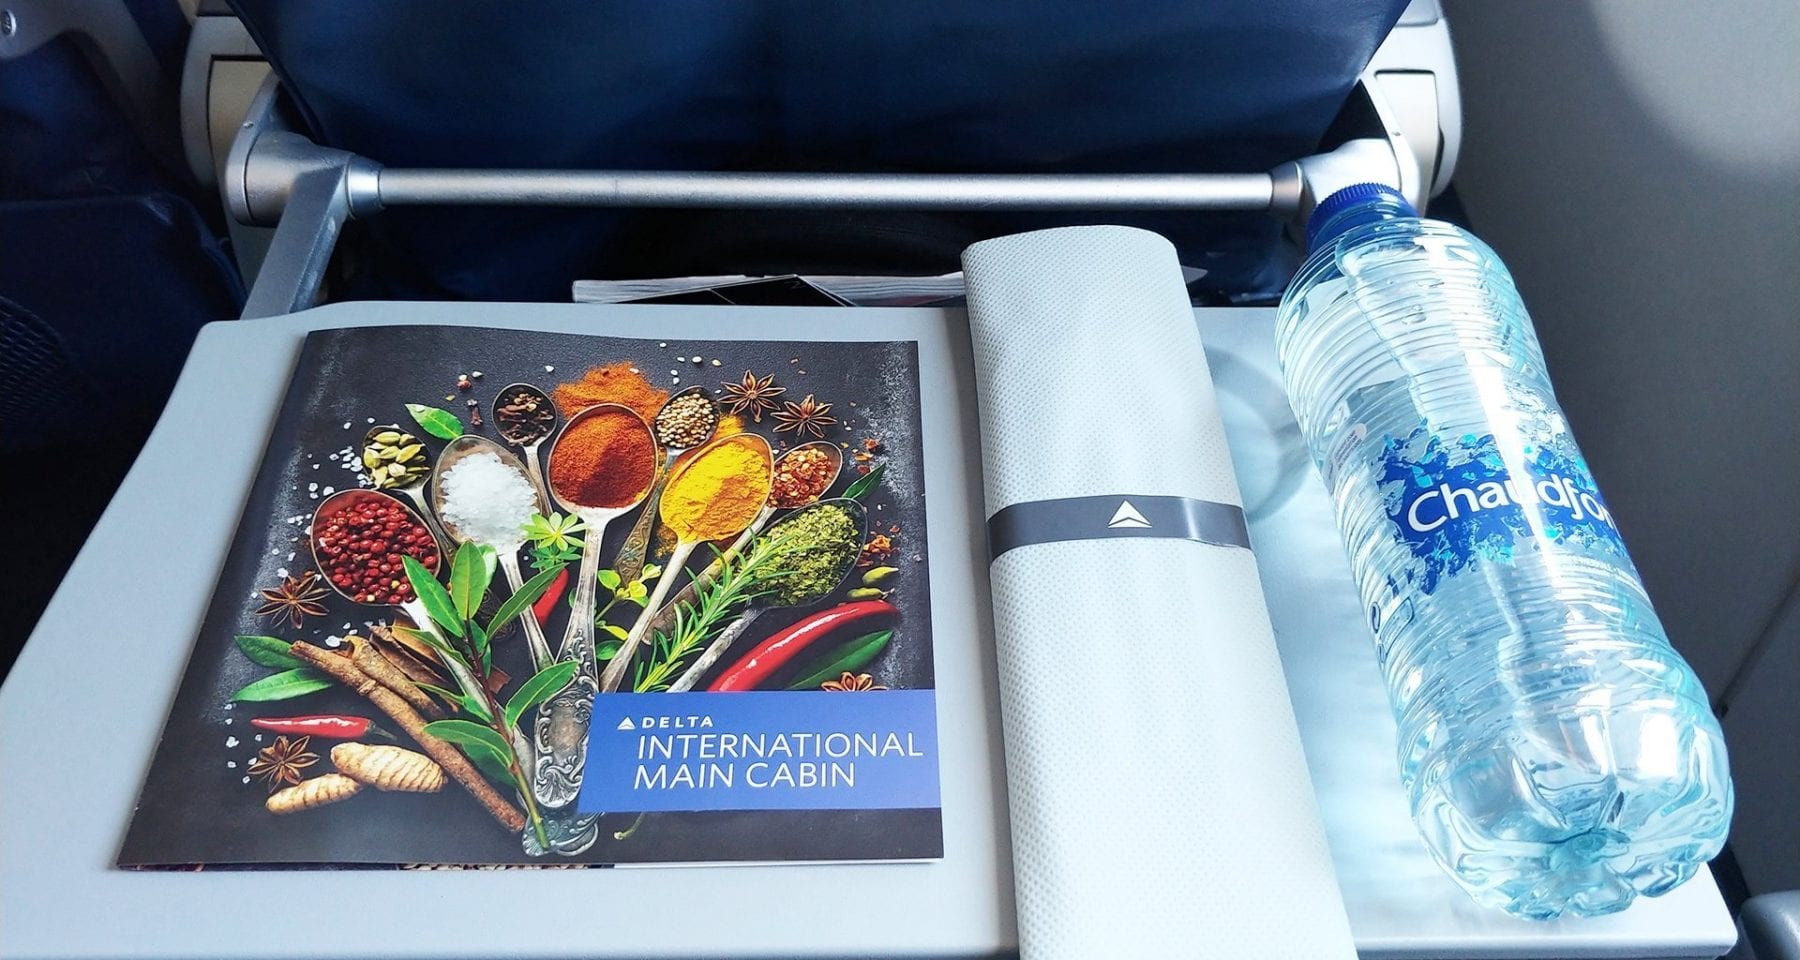 delta airlines inflight menu and water main cabin